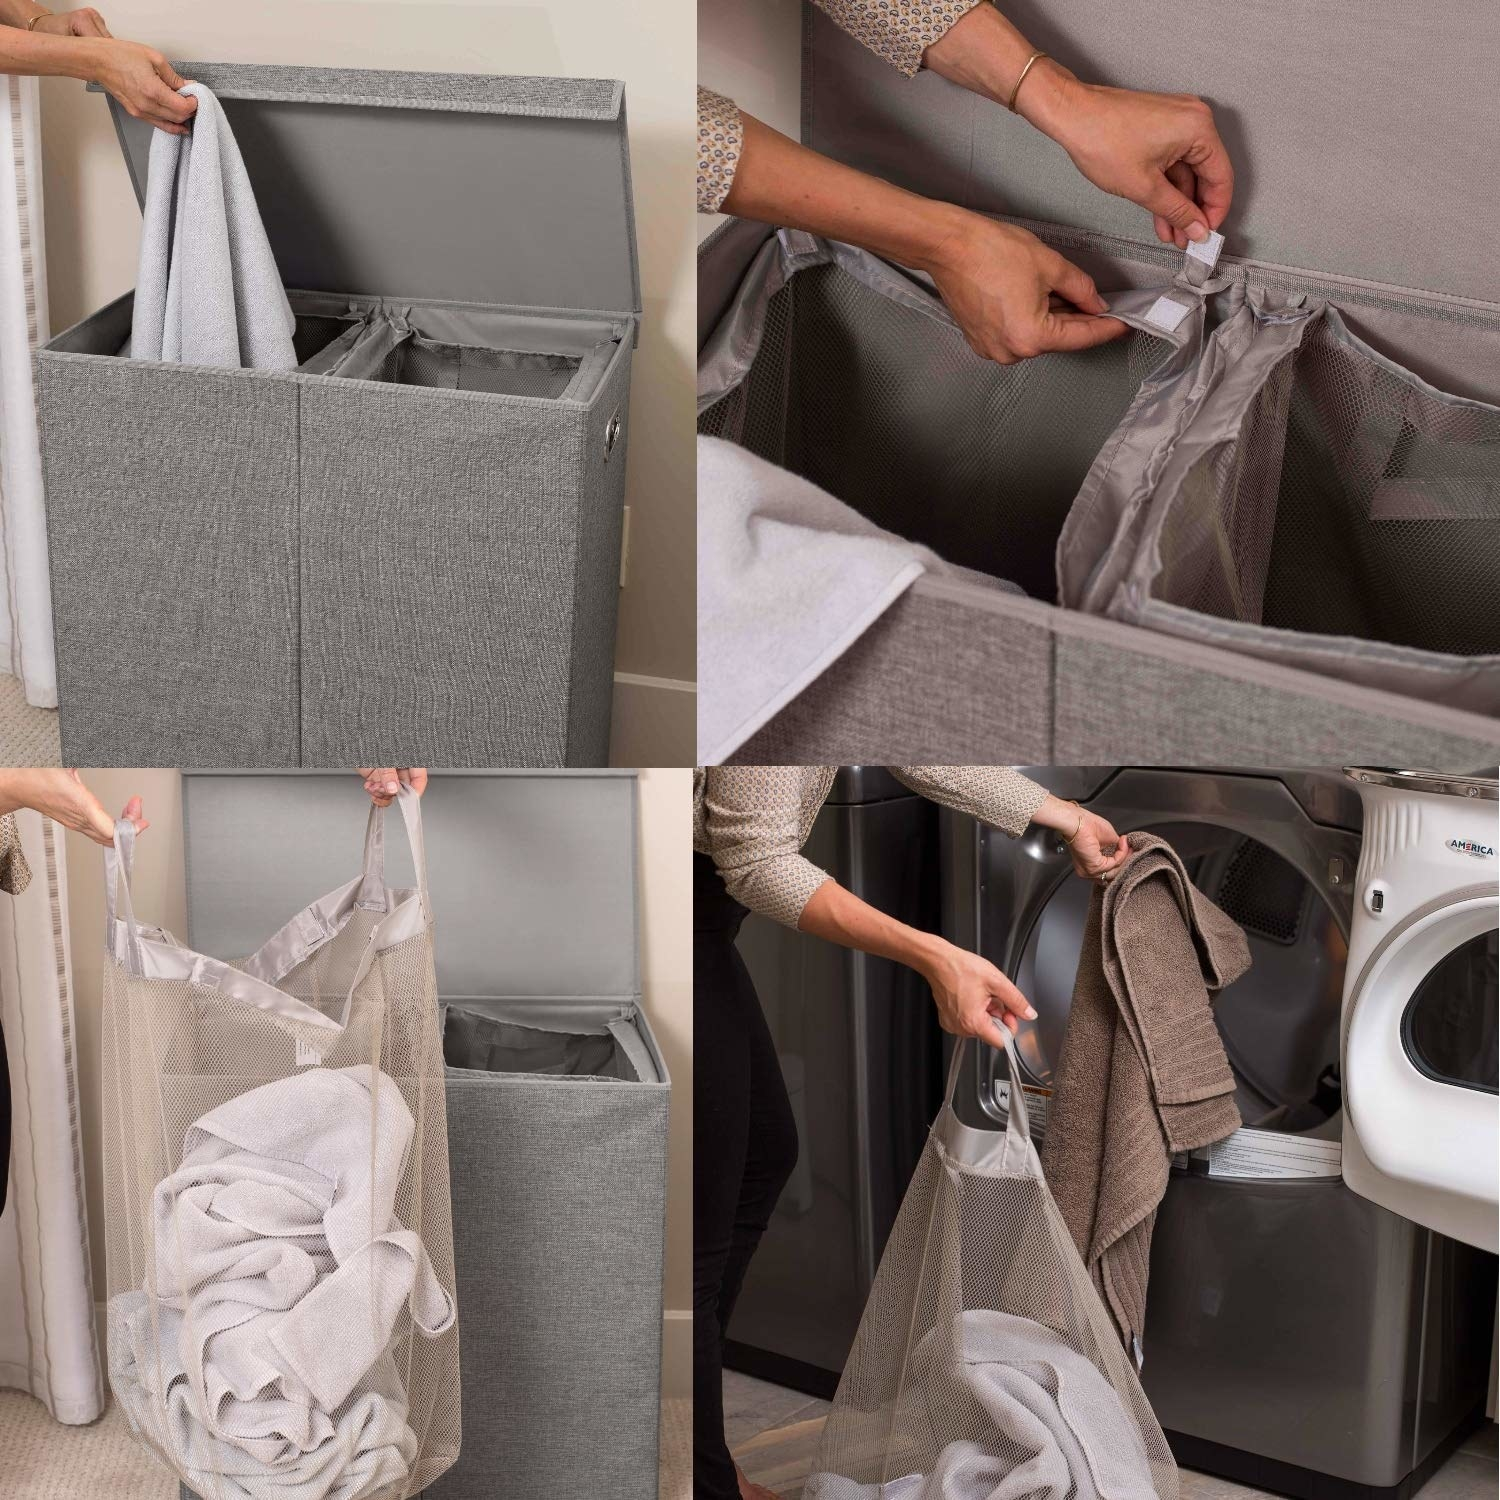 Four images showing a model filling the gray double hamper, unhooking the liner tote bag, pulling it out, and taking it to the washer